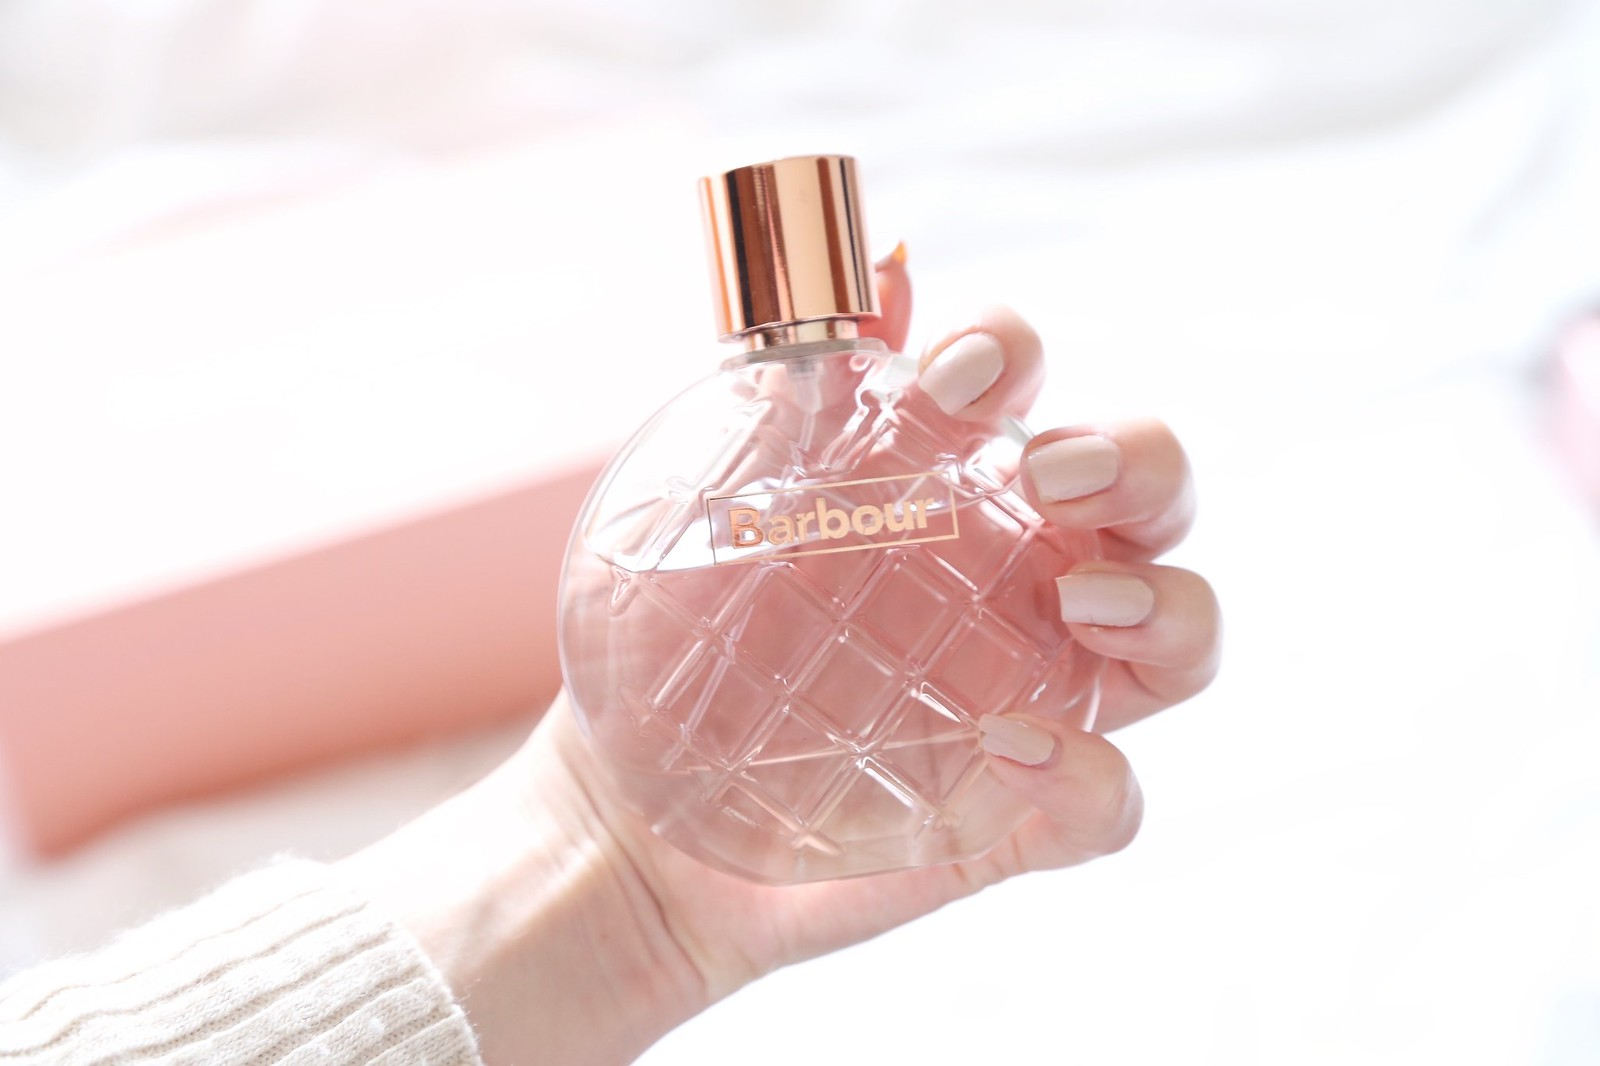 barbourfragrance, scottishblogger, scottishbeautyblog, selfridges,